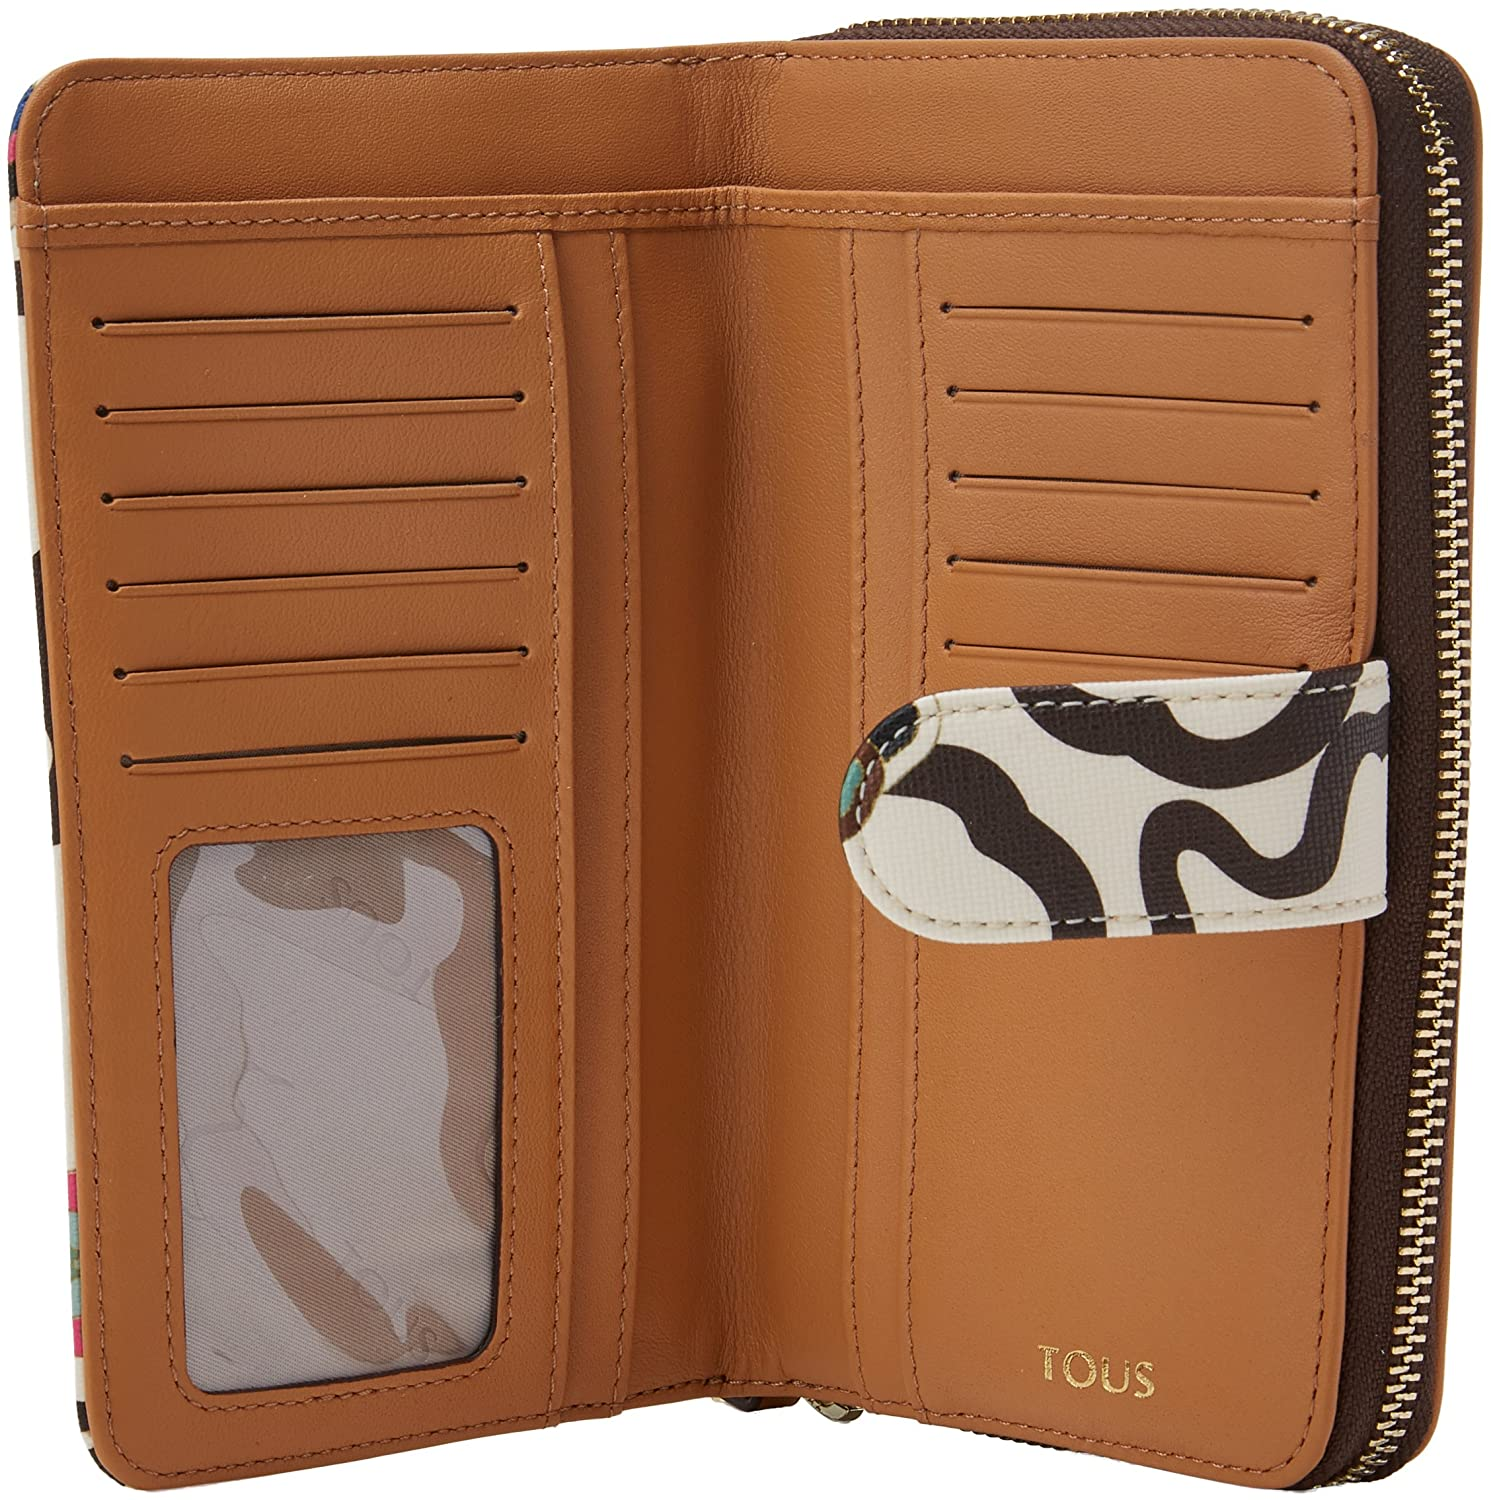 Amazon.com: Tous Kaos Mossaic Mediana, Womens Wallet ...